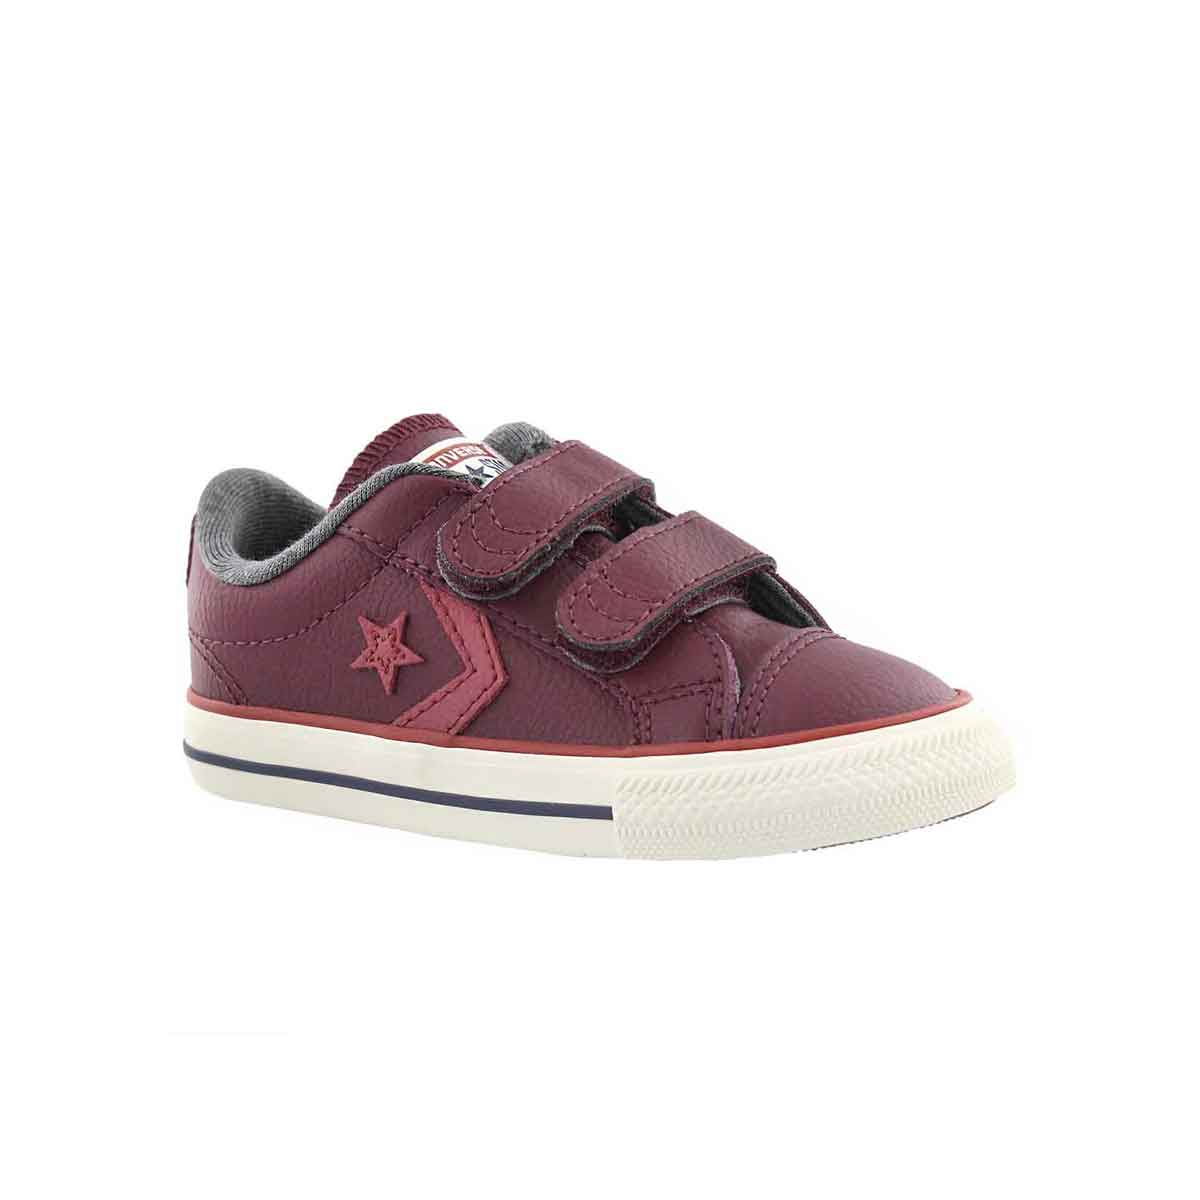 Infants' STAR PLAYER 2V dark sangria sneakers